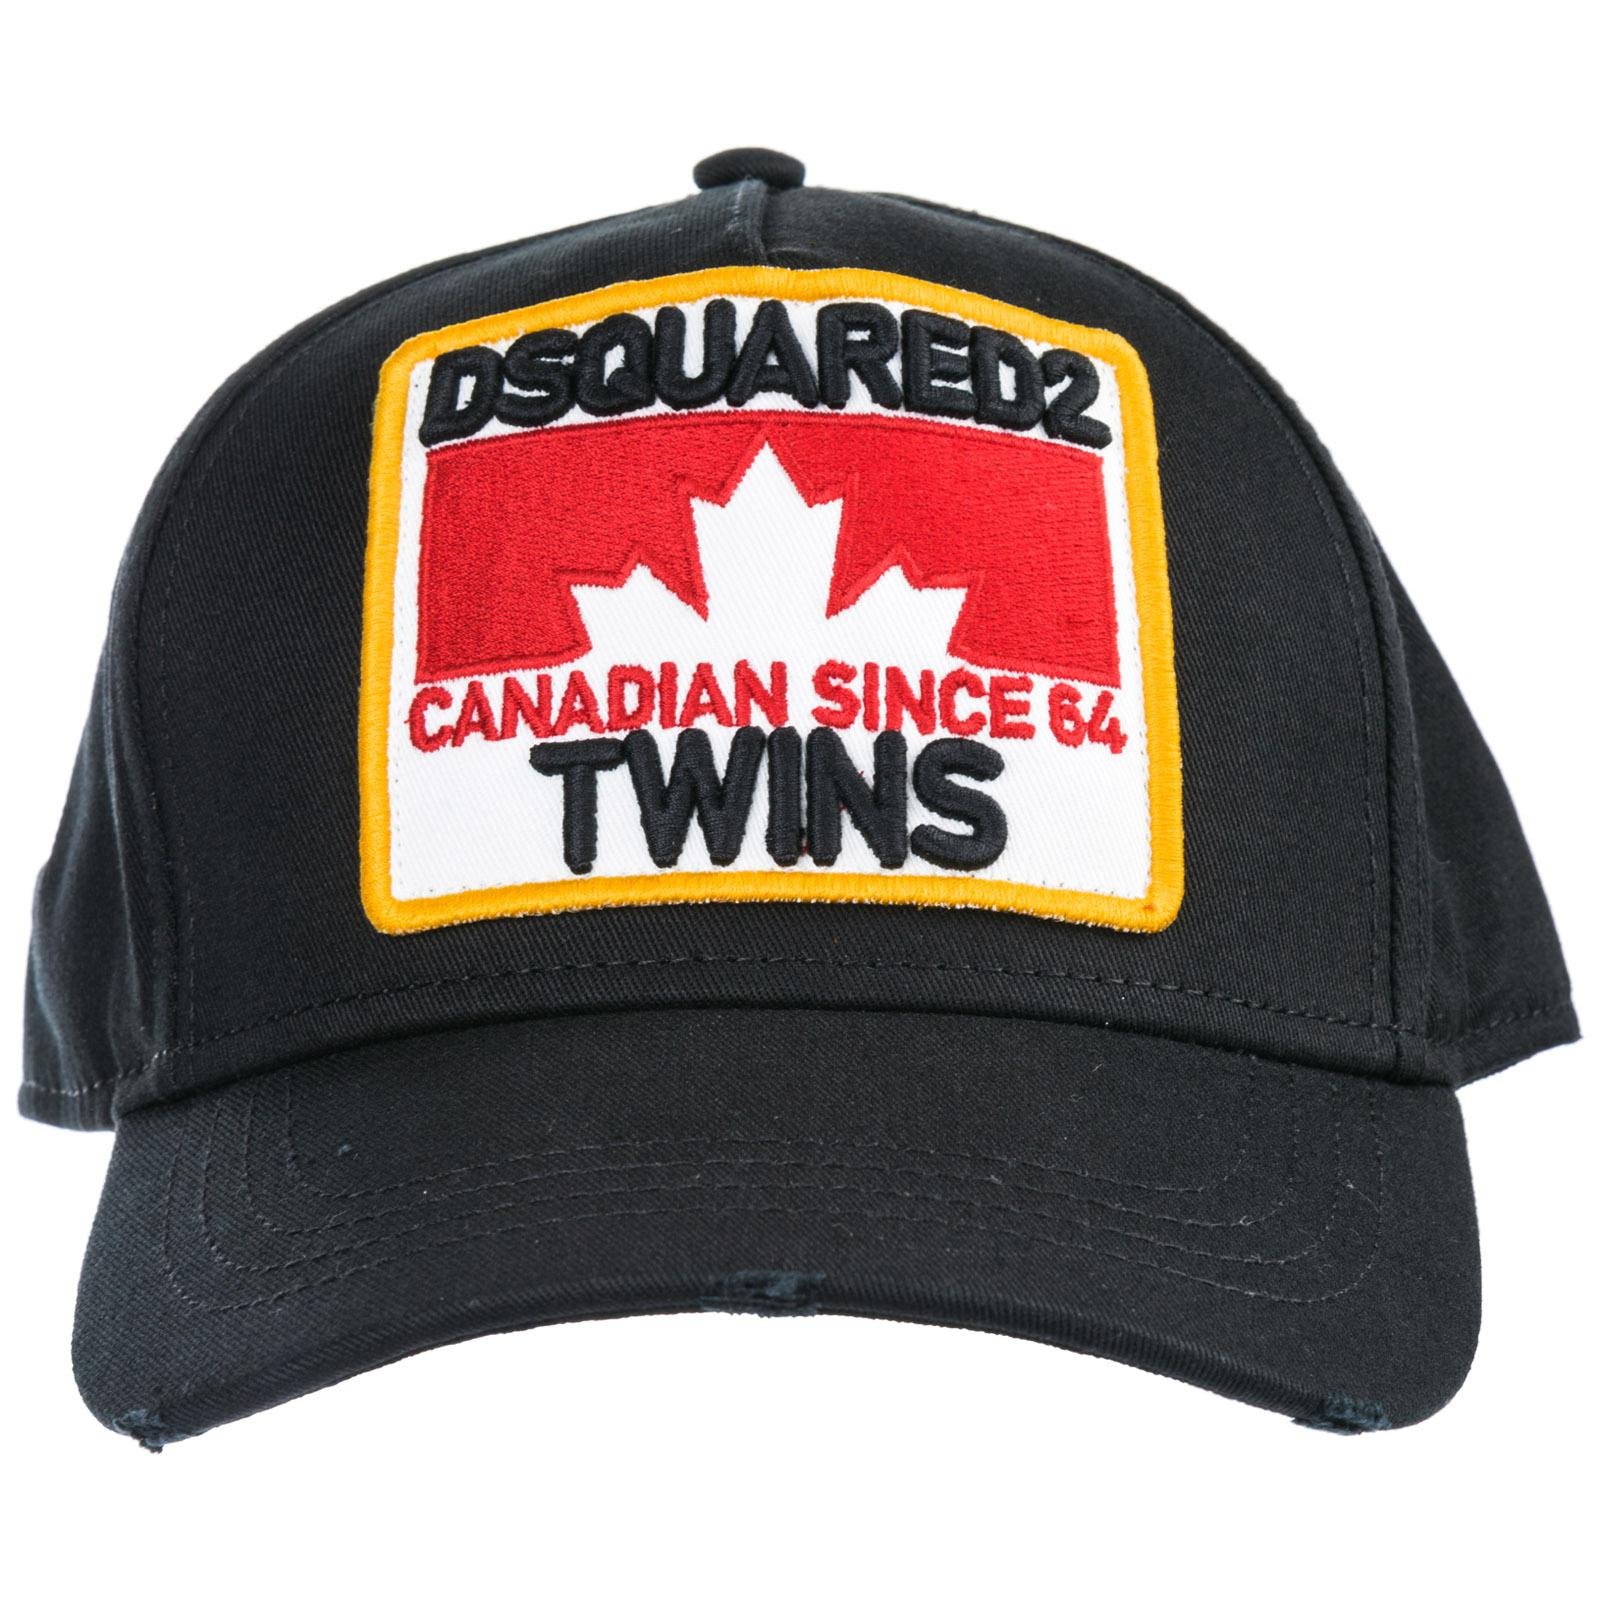 5a4add53 Lyst - DSquared² Adjustable Cotton Hat Baseball Cap Twins in Black ...